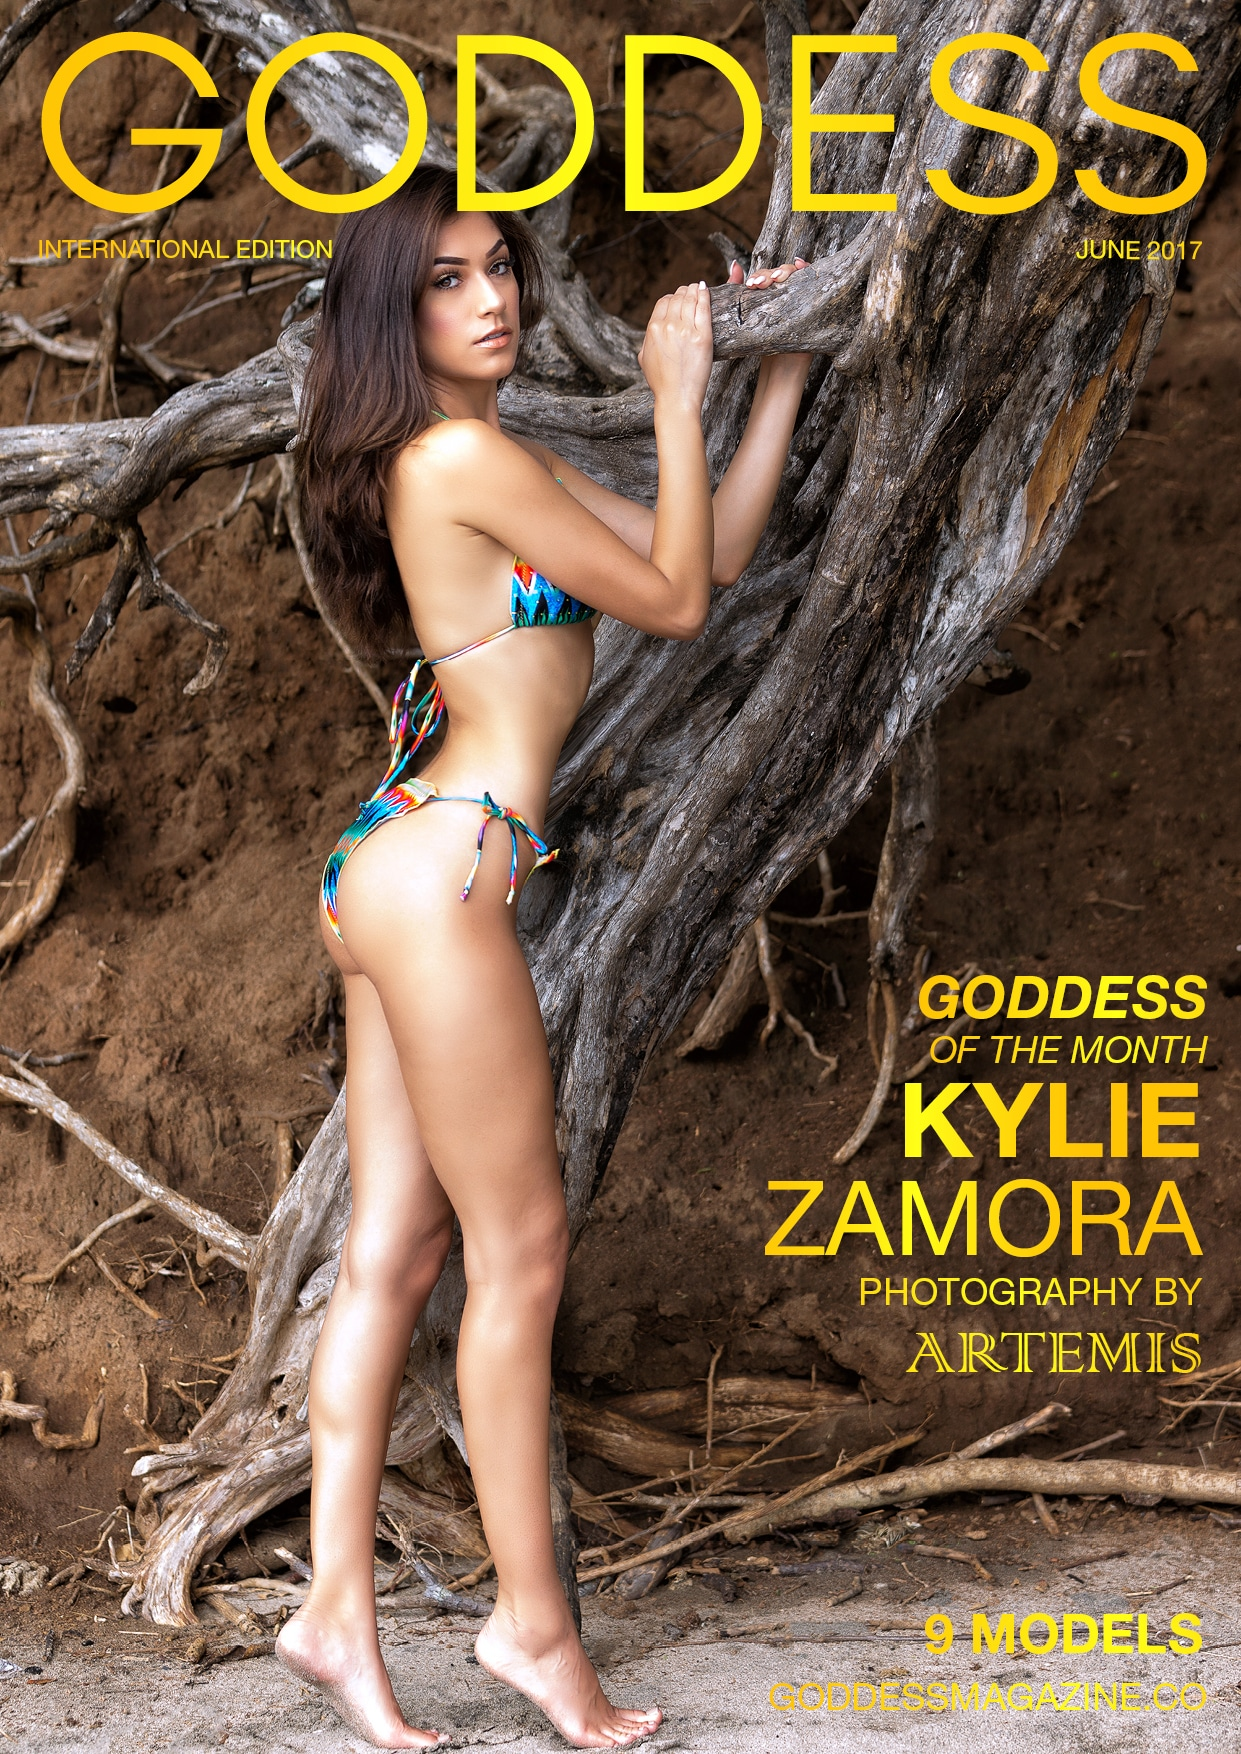 ***New Goddess Cover - Featuring Kylie Zamora